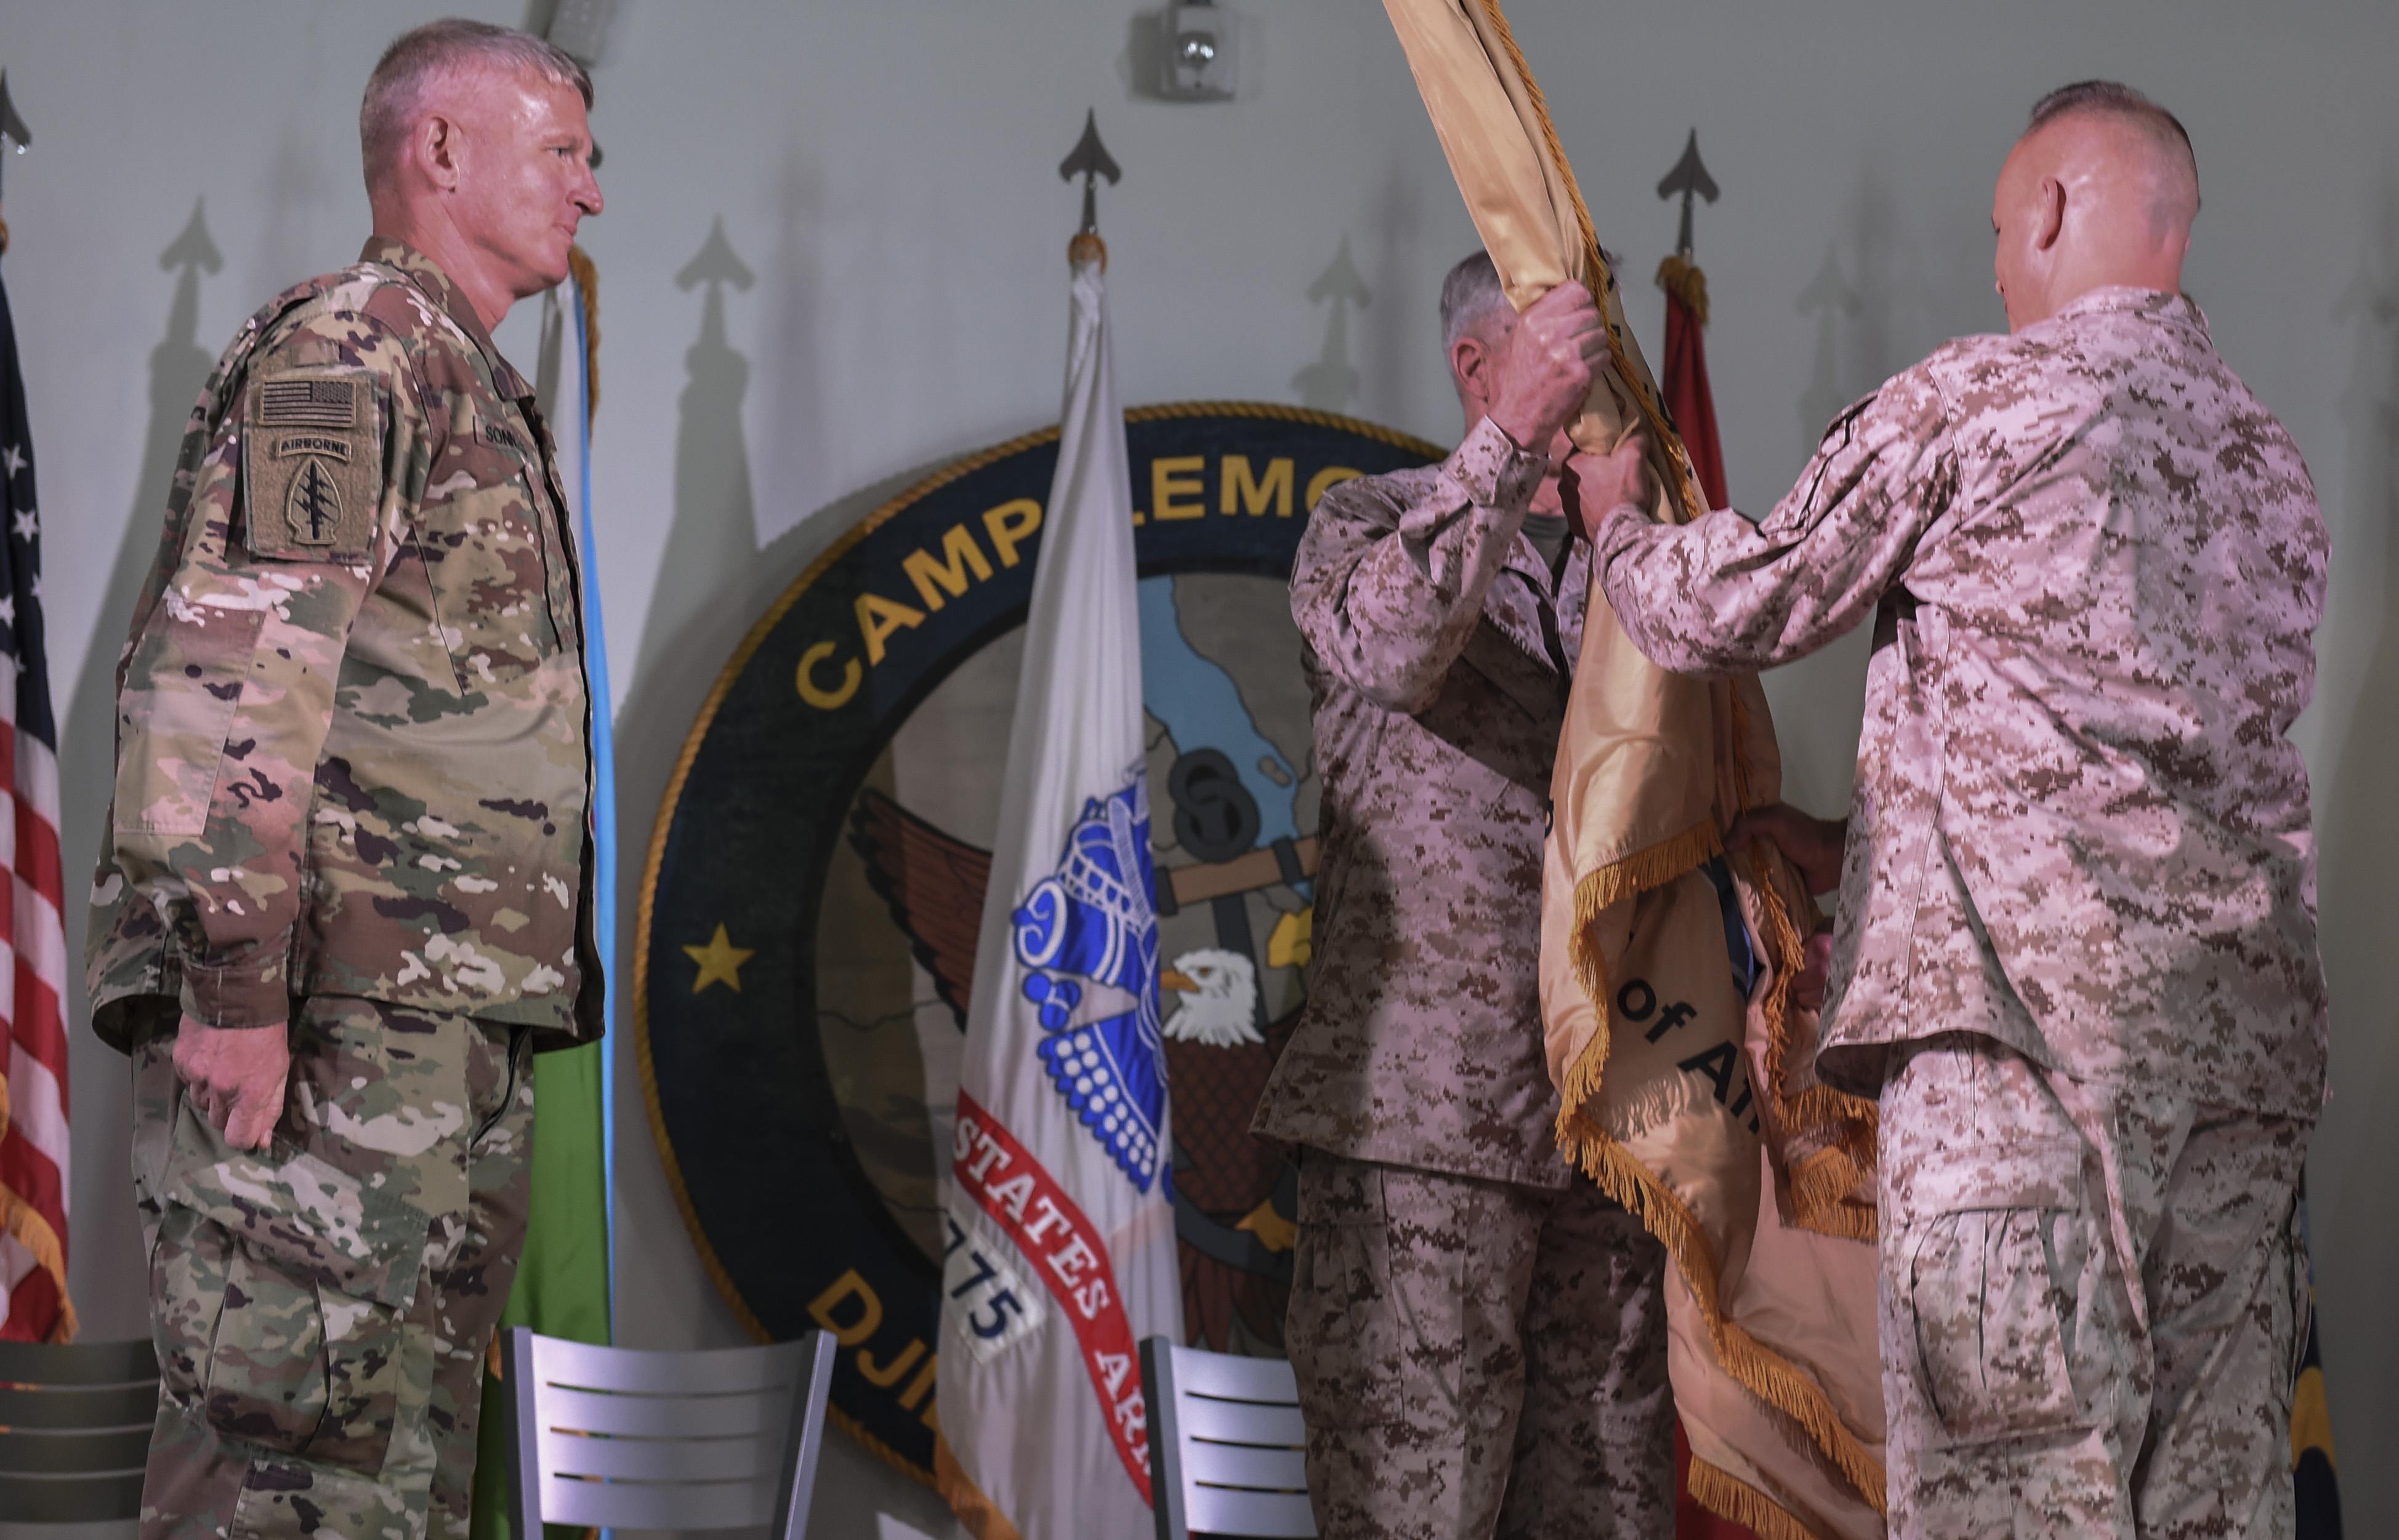 U.S. Marine Corps Gen. Thomas Waldhauser, U.S. Africa Command commander, hands the guidon to Brig. Gen. David J. Furness, the incoming Combined Joint Task Force - Horn of Africa commander, during the change of command ceremony on Camp Lemonnier in Djibouti, April 28, 2017. Furness previously served as the legislative assistant to the commandant of the Marine Corps at the Pentagon in Washington D.C. (U.S. Air Force Photo by Eboni Prince)